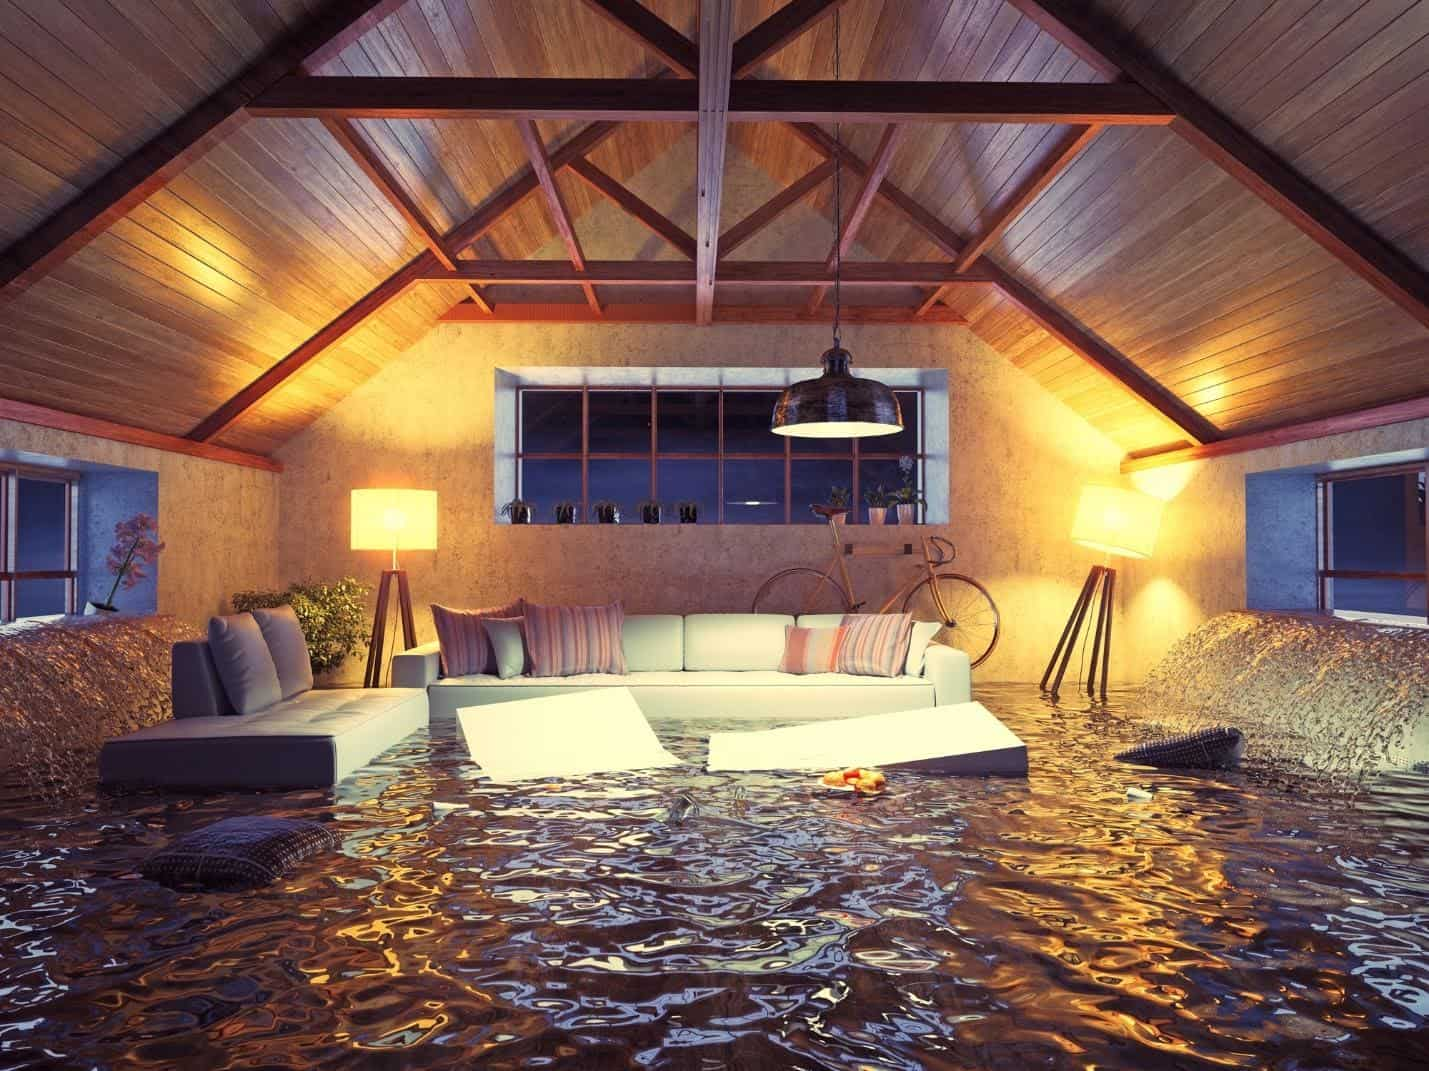 New York Experts & Waterproofing Your Home